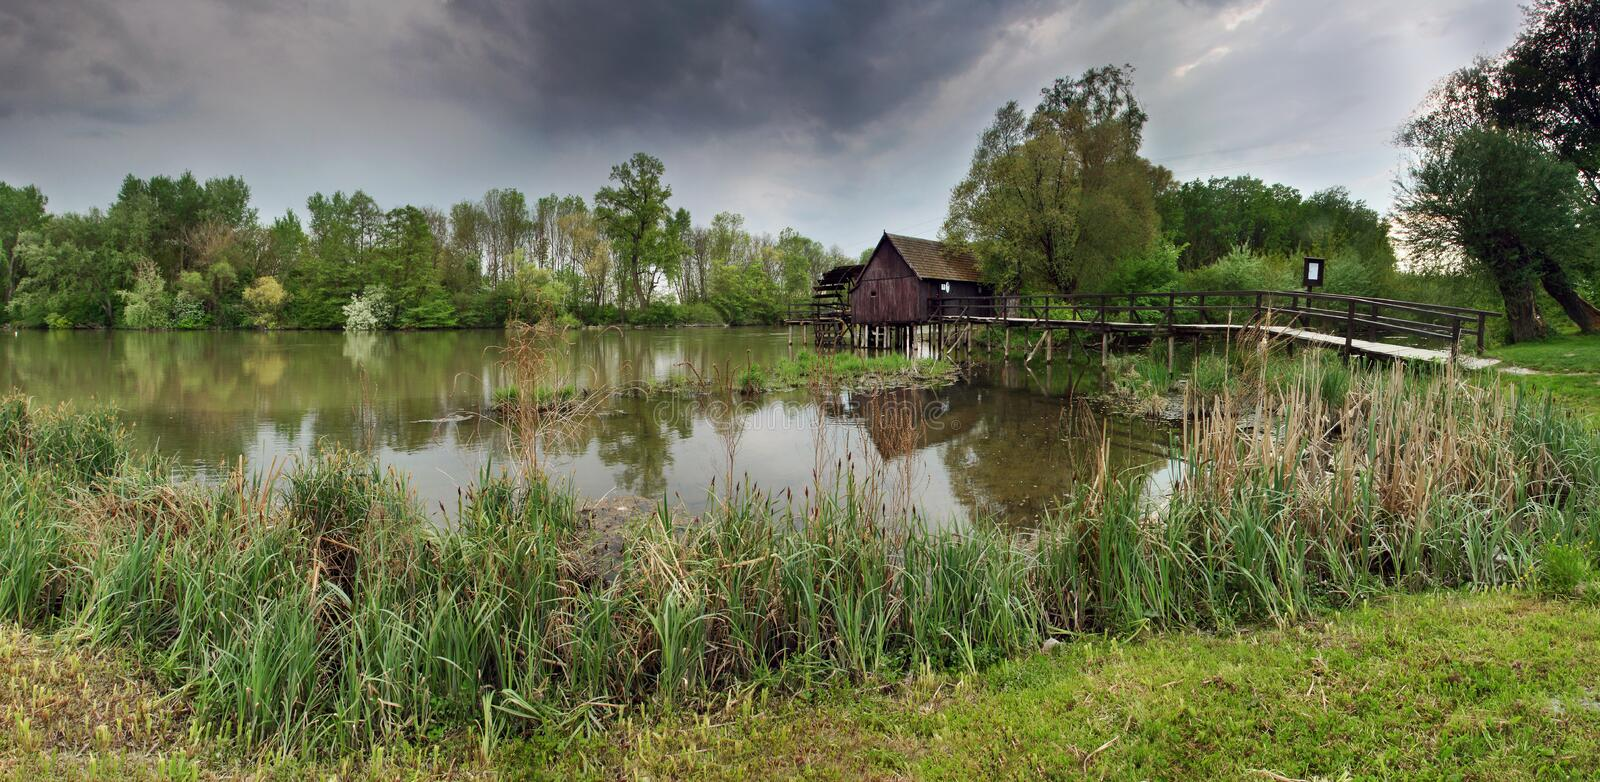 Ancient Watermill Royalty Free Stock Photos